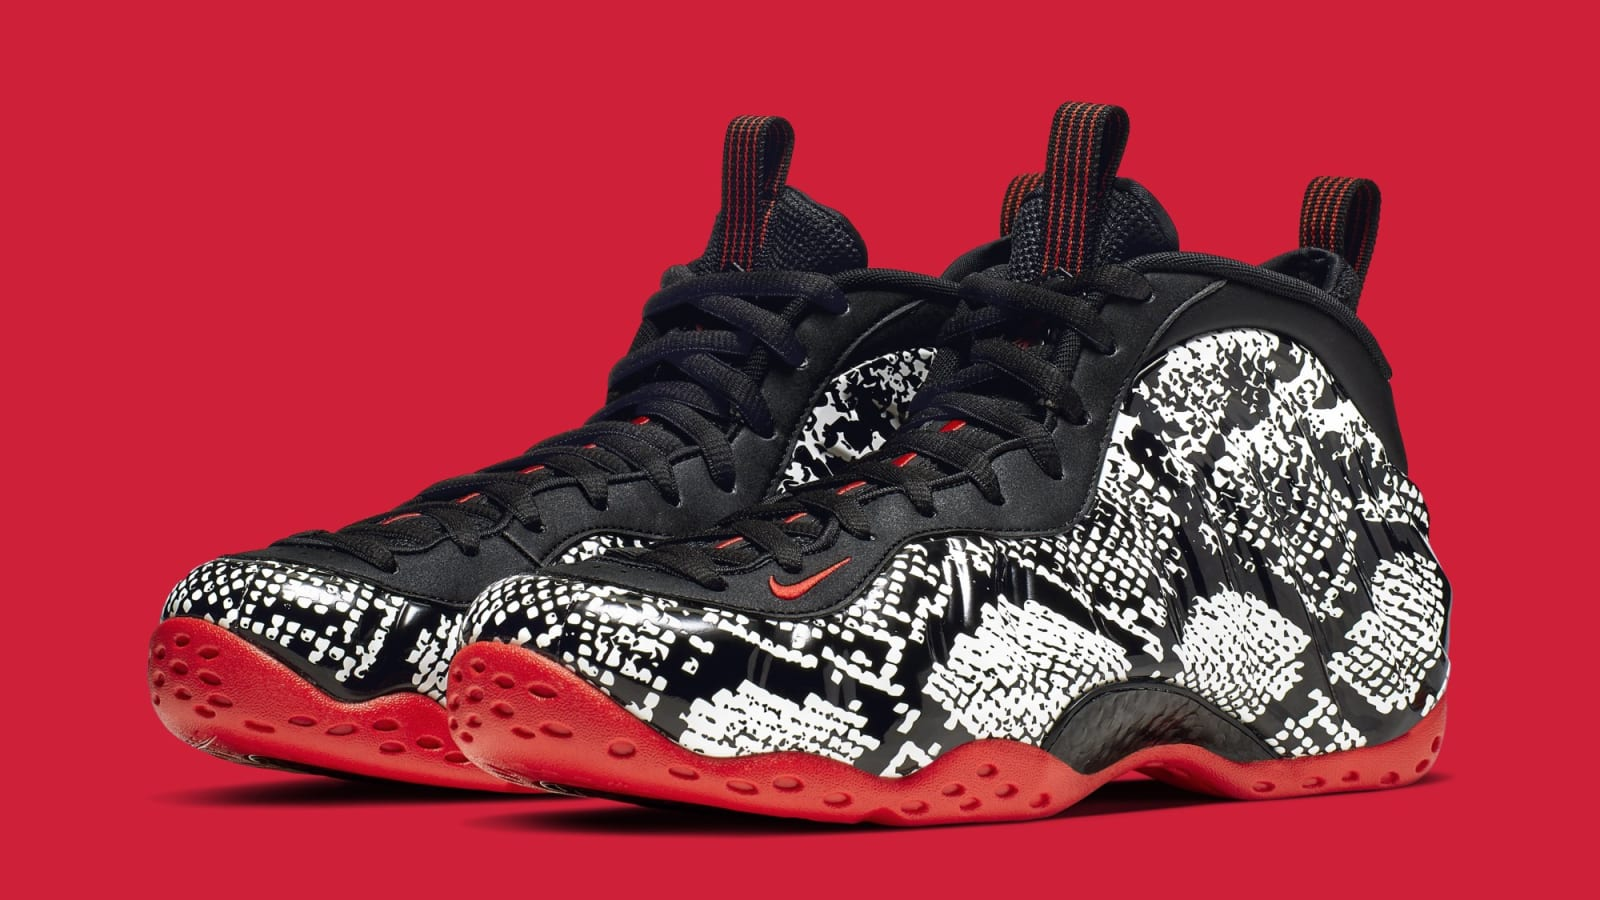 """Nike Air Foamposite One """"Snakeskin"""" Releases Next Month: Official Photos"""